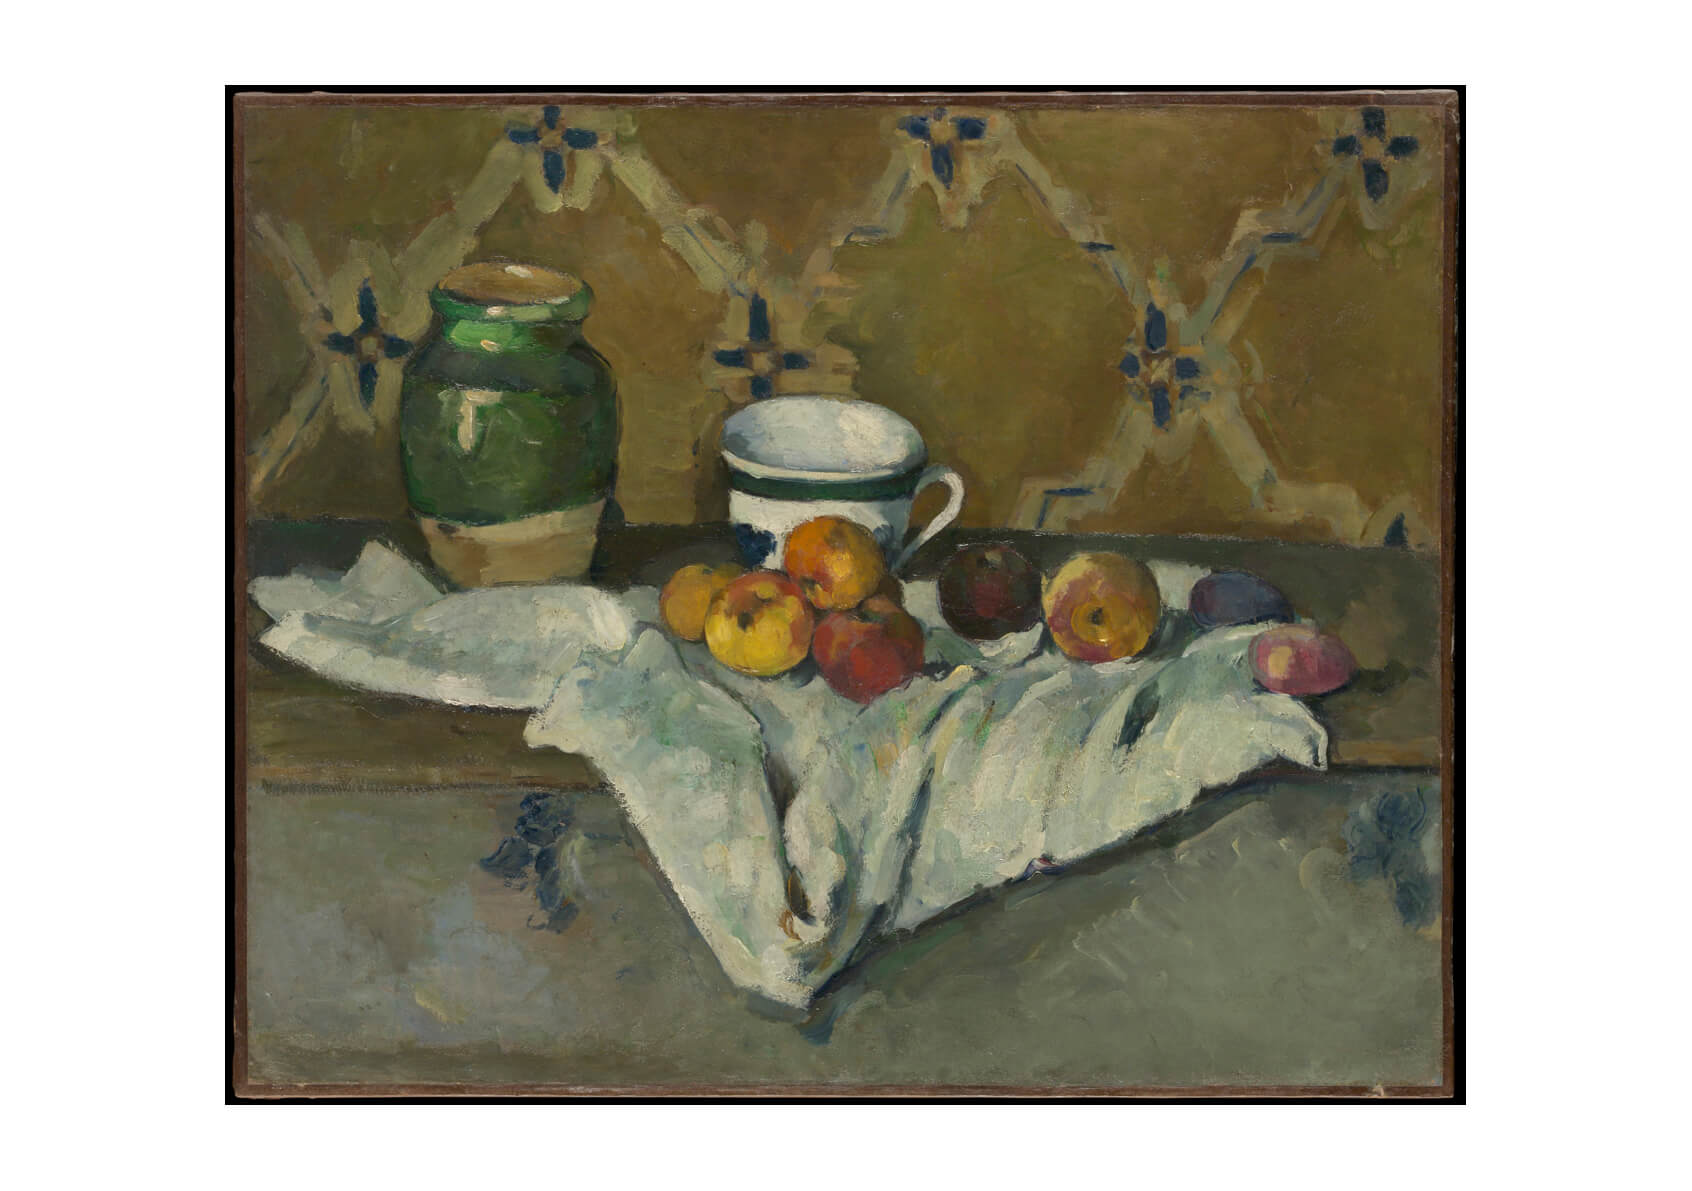 Paul Cezanne - Still Life with Jar Cup and Apples